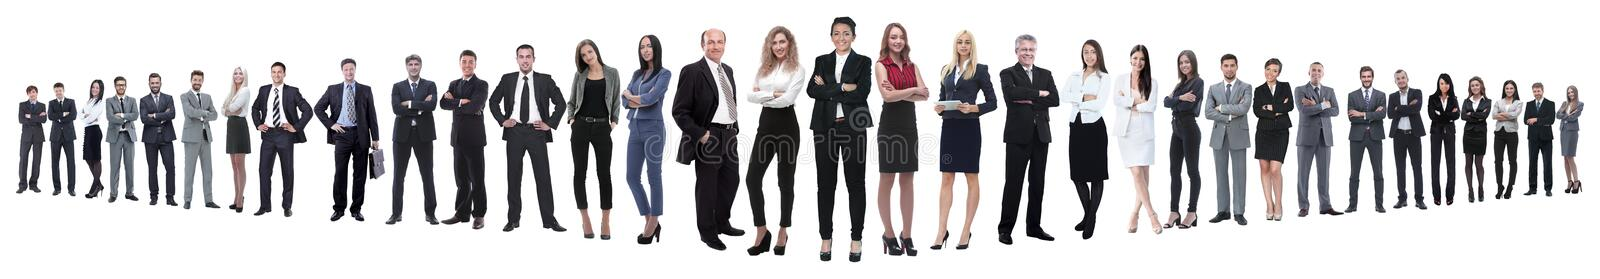 Panoramic photo of a group of confident business people. royalty free stock photos